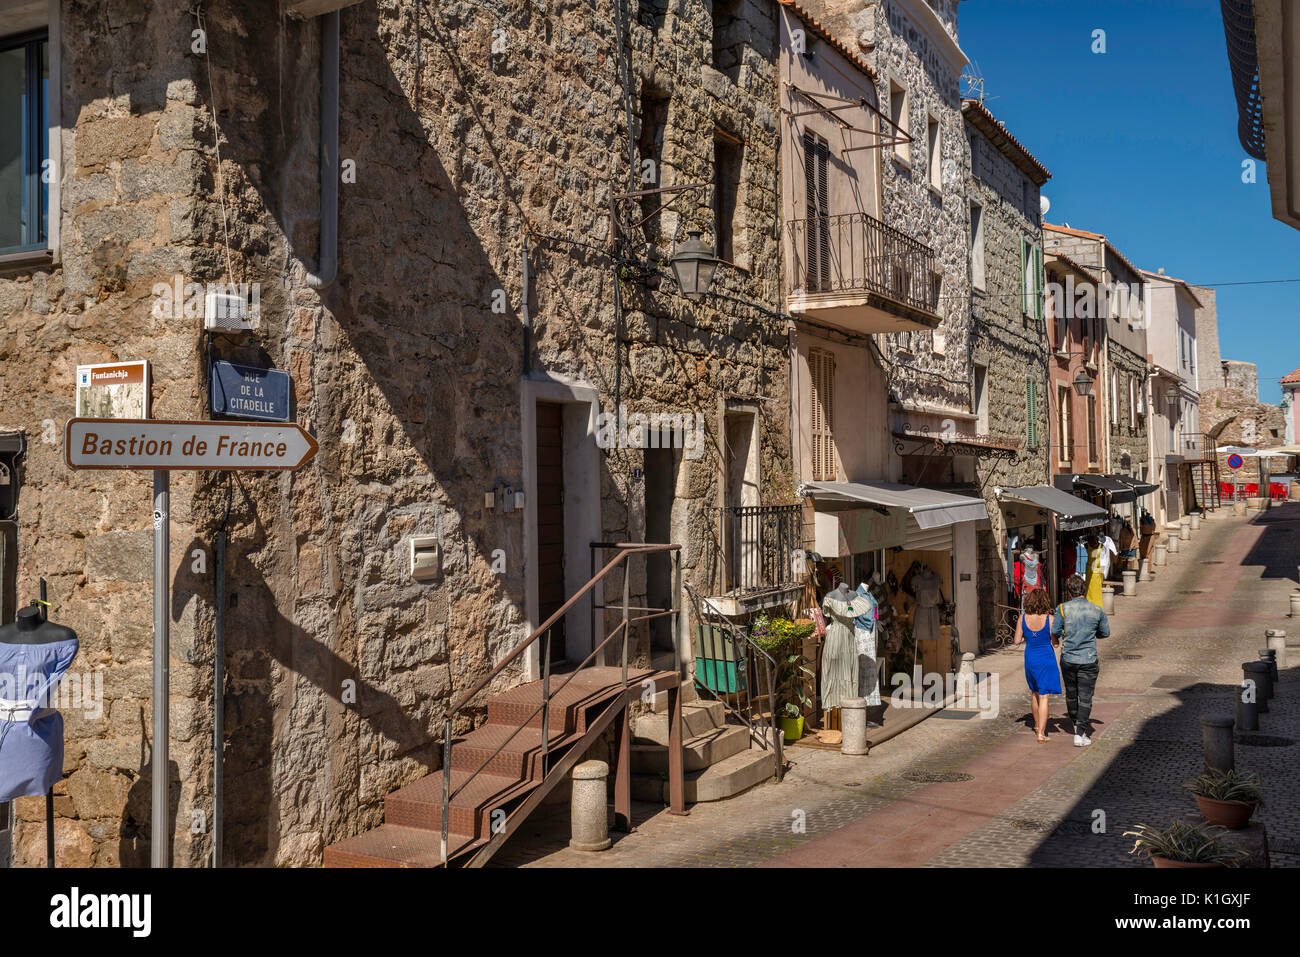 Rue de la Citadelle, vieille ville colline article de Porto-Vecchio, Corse, France Photo Stock